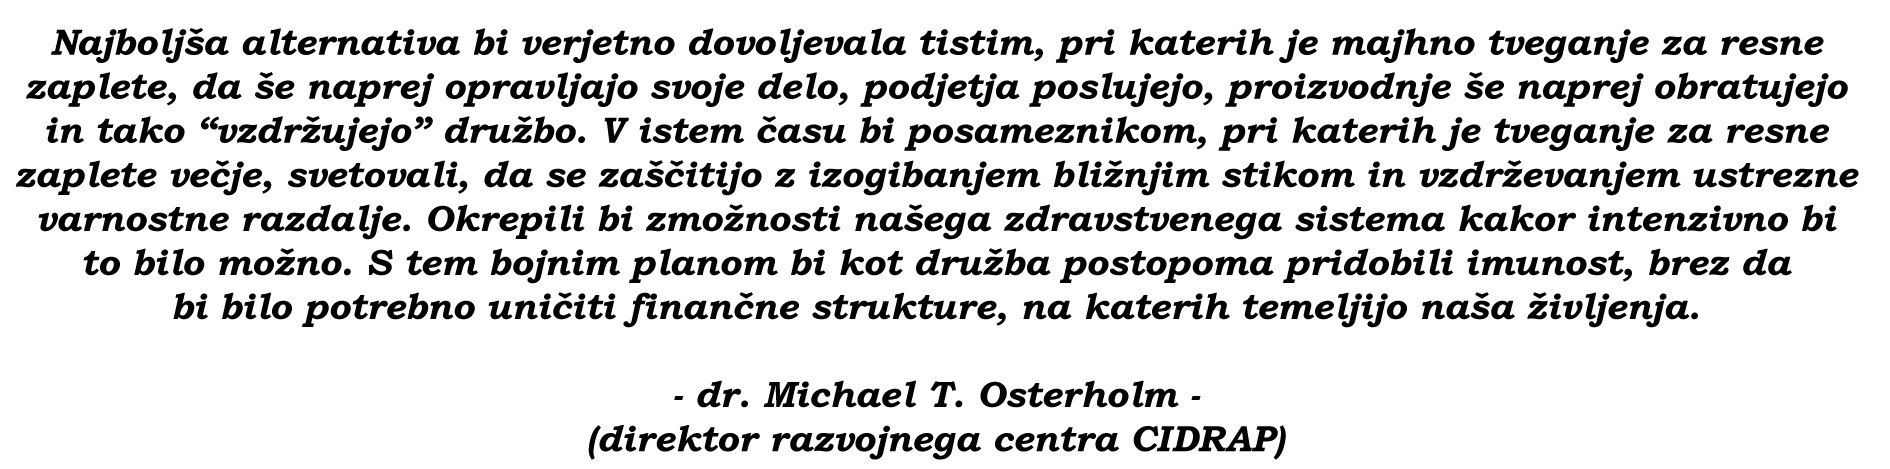 osterholm quote 2